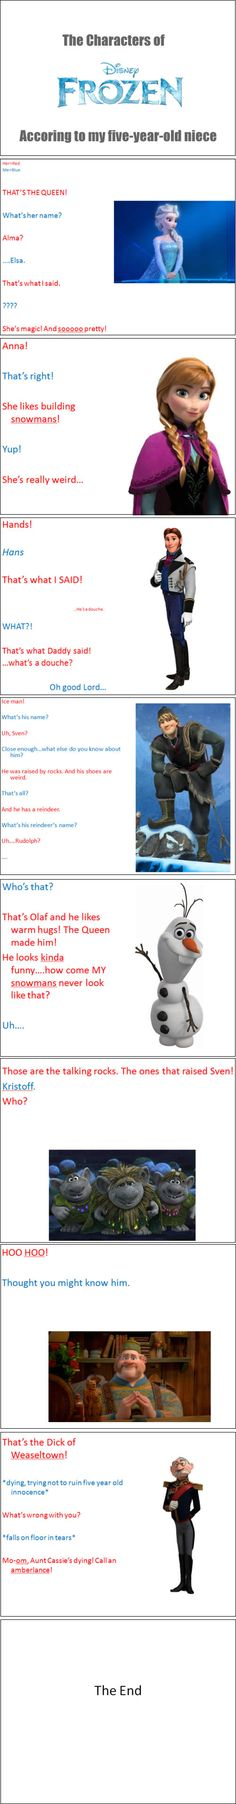 The characters of Frozen according to a five-year-old girl. That was adorable. more funny pics on facebook: https://www.facebook.com/yourfunnypics101